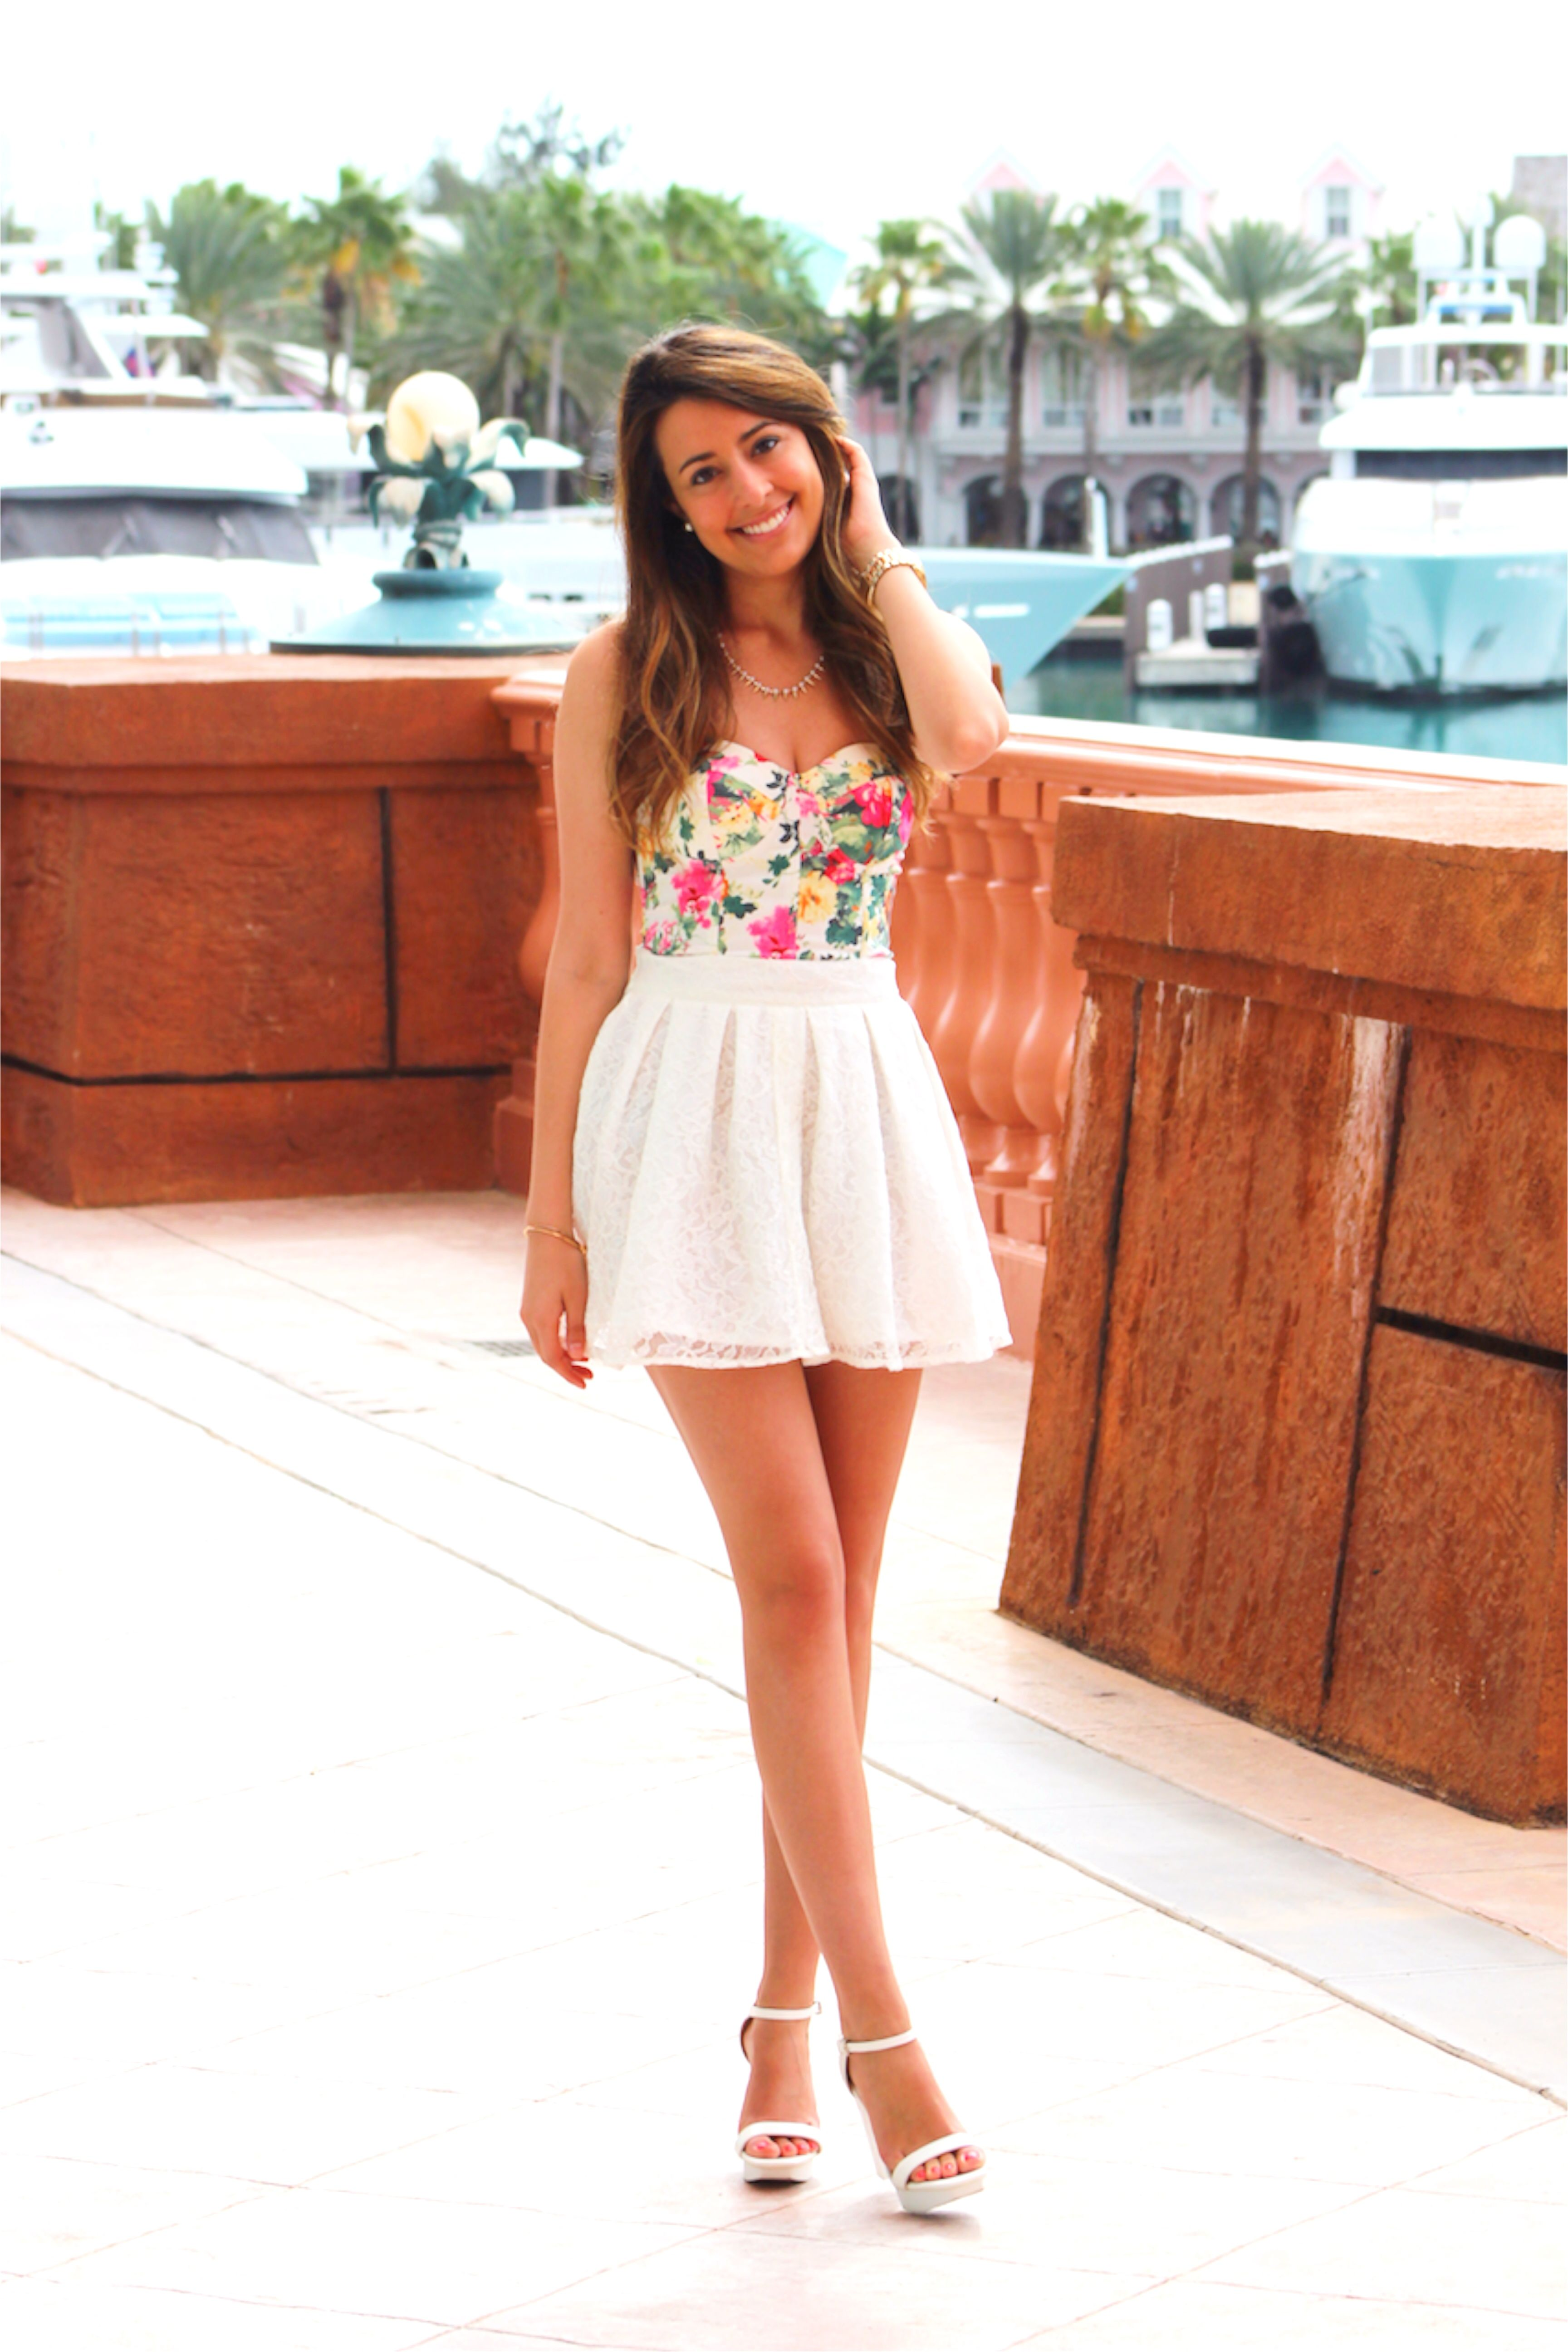 Casual Summer Outfits - Top 10 #Summer #Fashion Outfits for 2015 ...